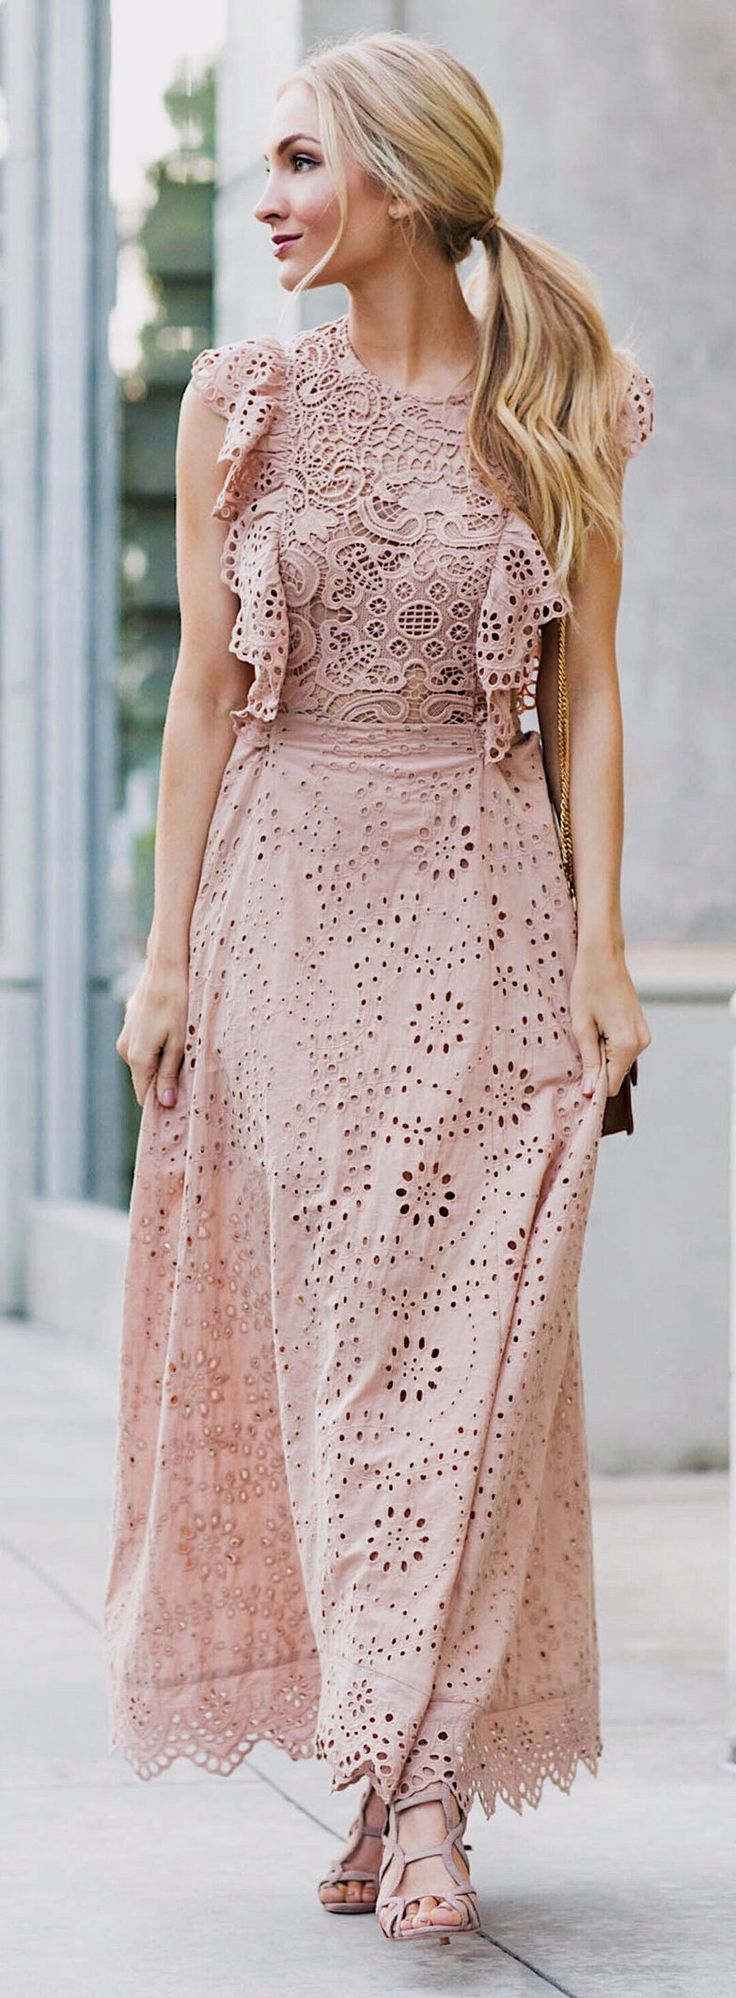 Pink Lace Dress & Nude Sandals